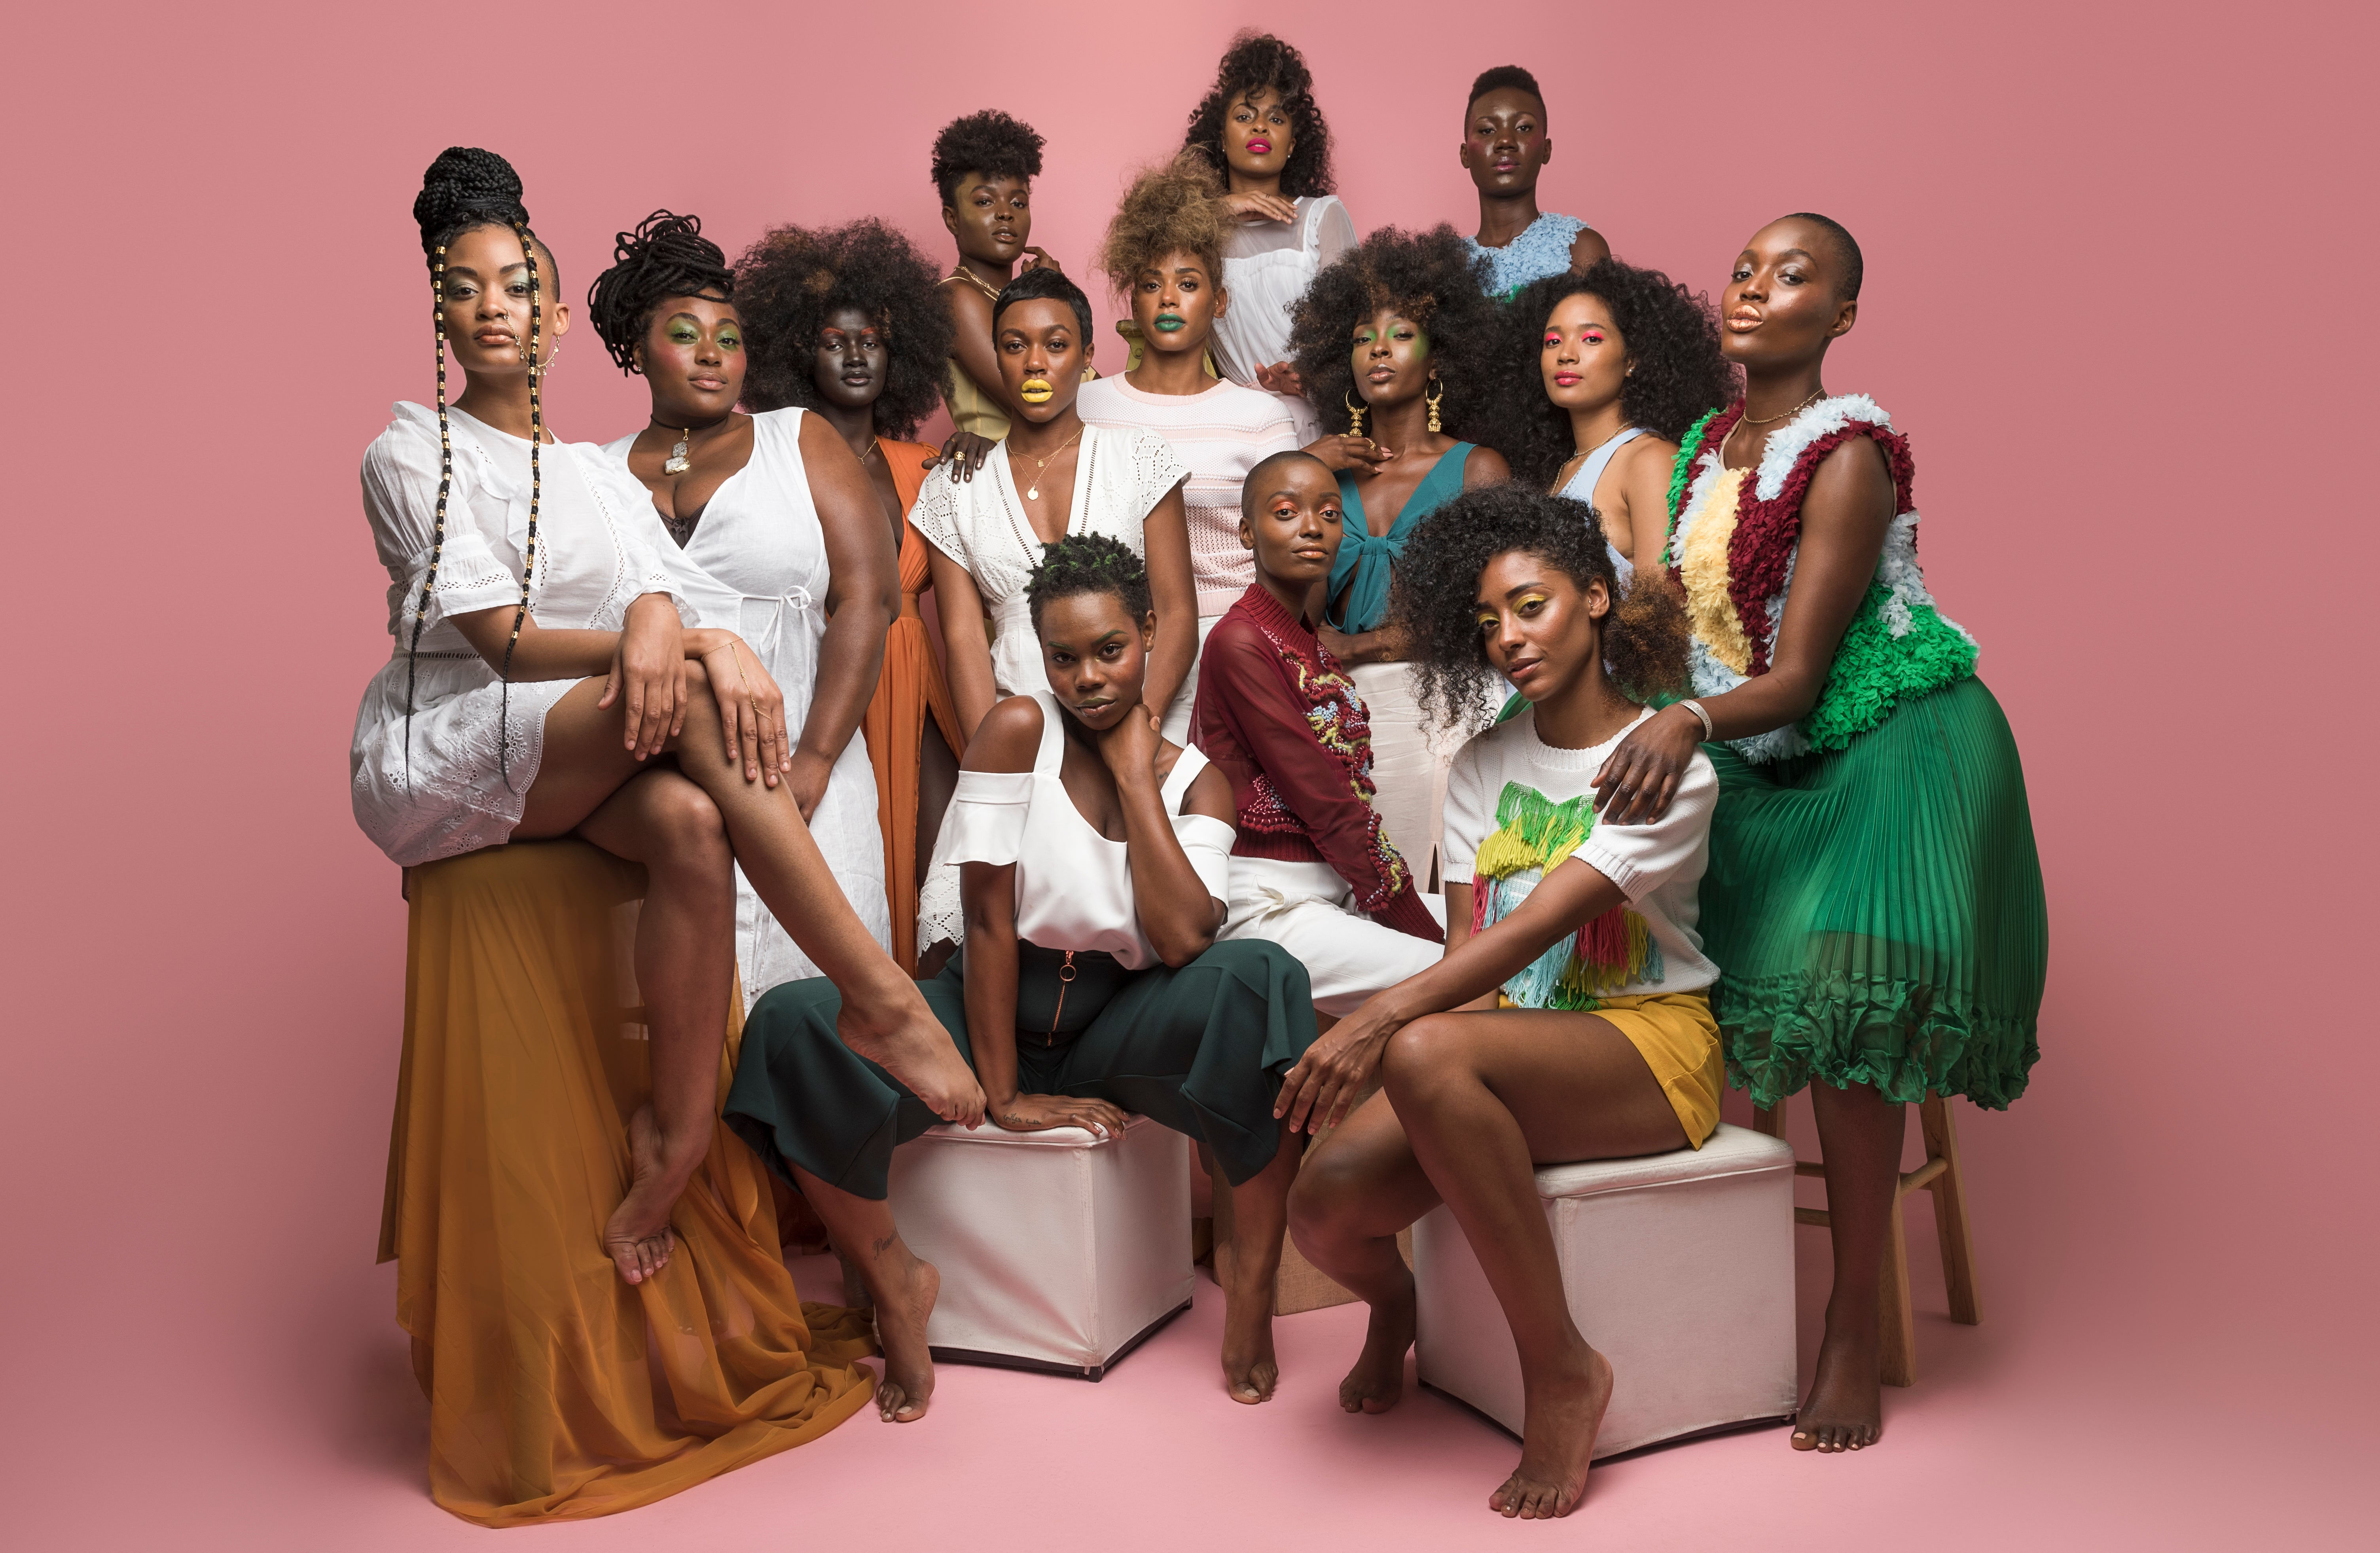 The Colored Girl Features Nubian Skin and Chiki Miki in 'FULL BLOOM' Campaign